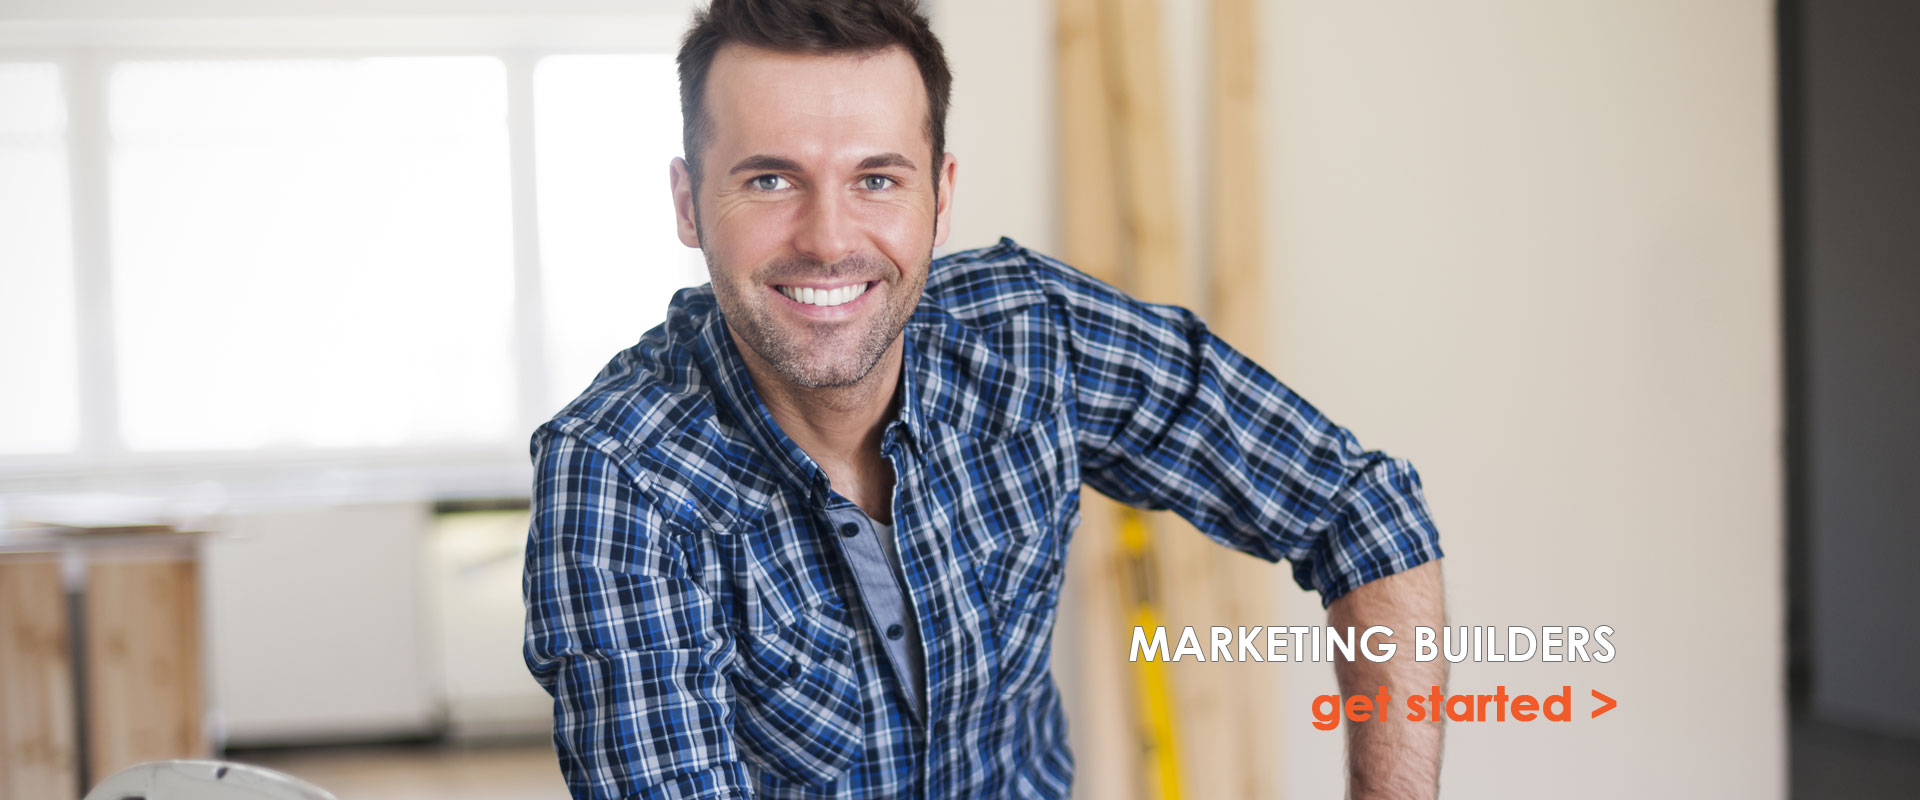 Marketing For Builders